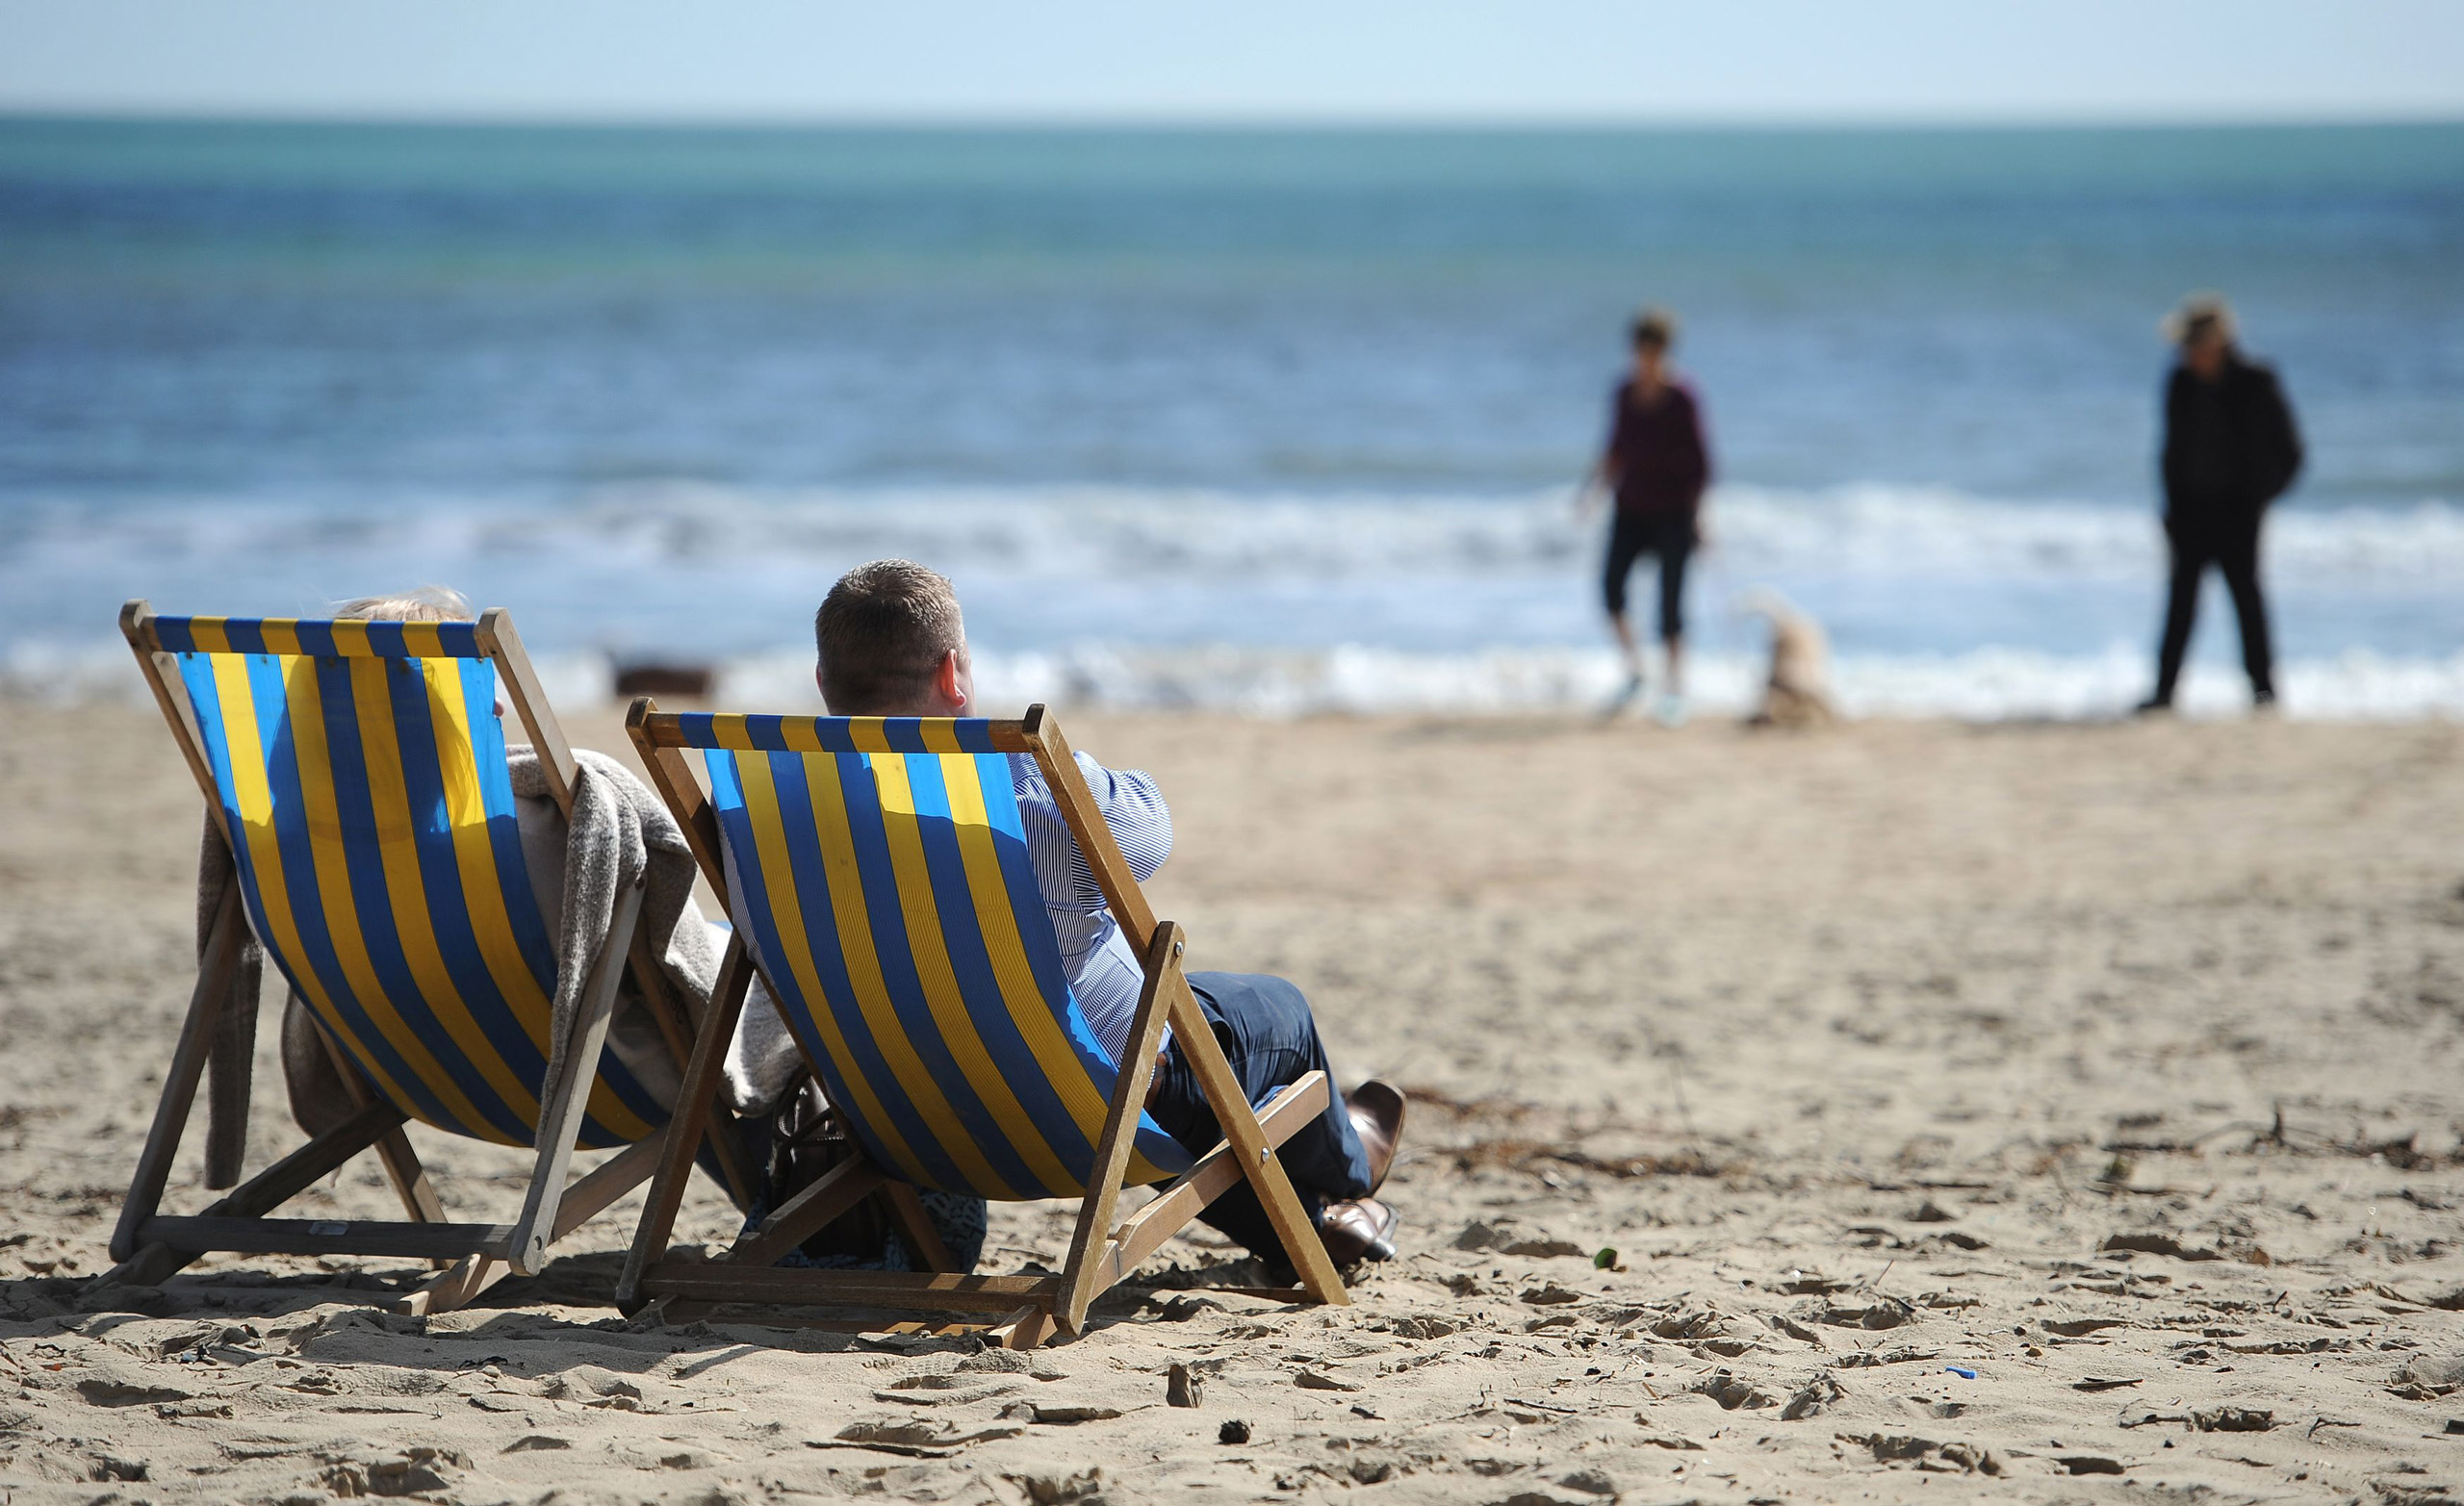 People enjoying the sun on Bournemouth beach, U.K., on Mar. 25, 2016.